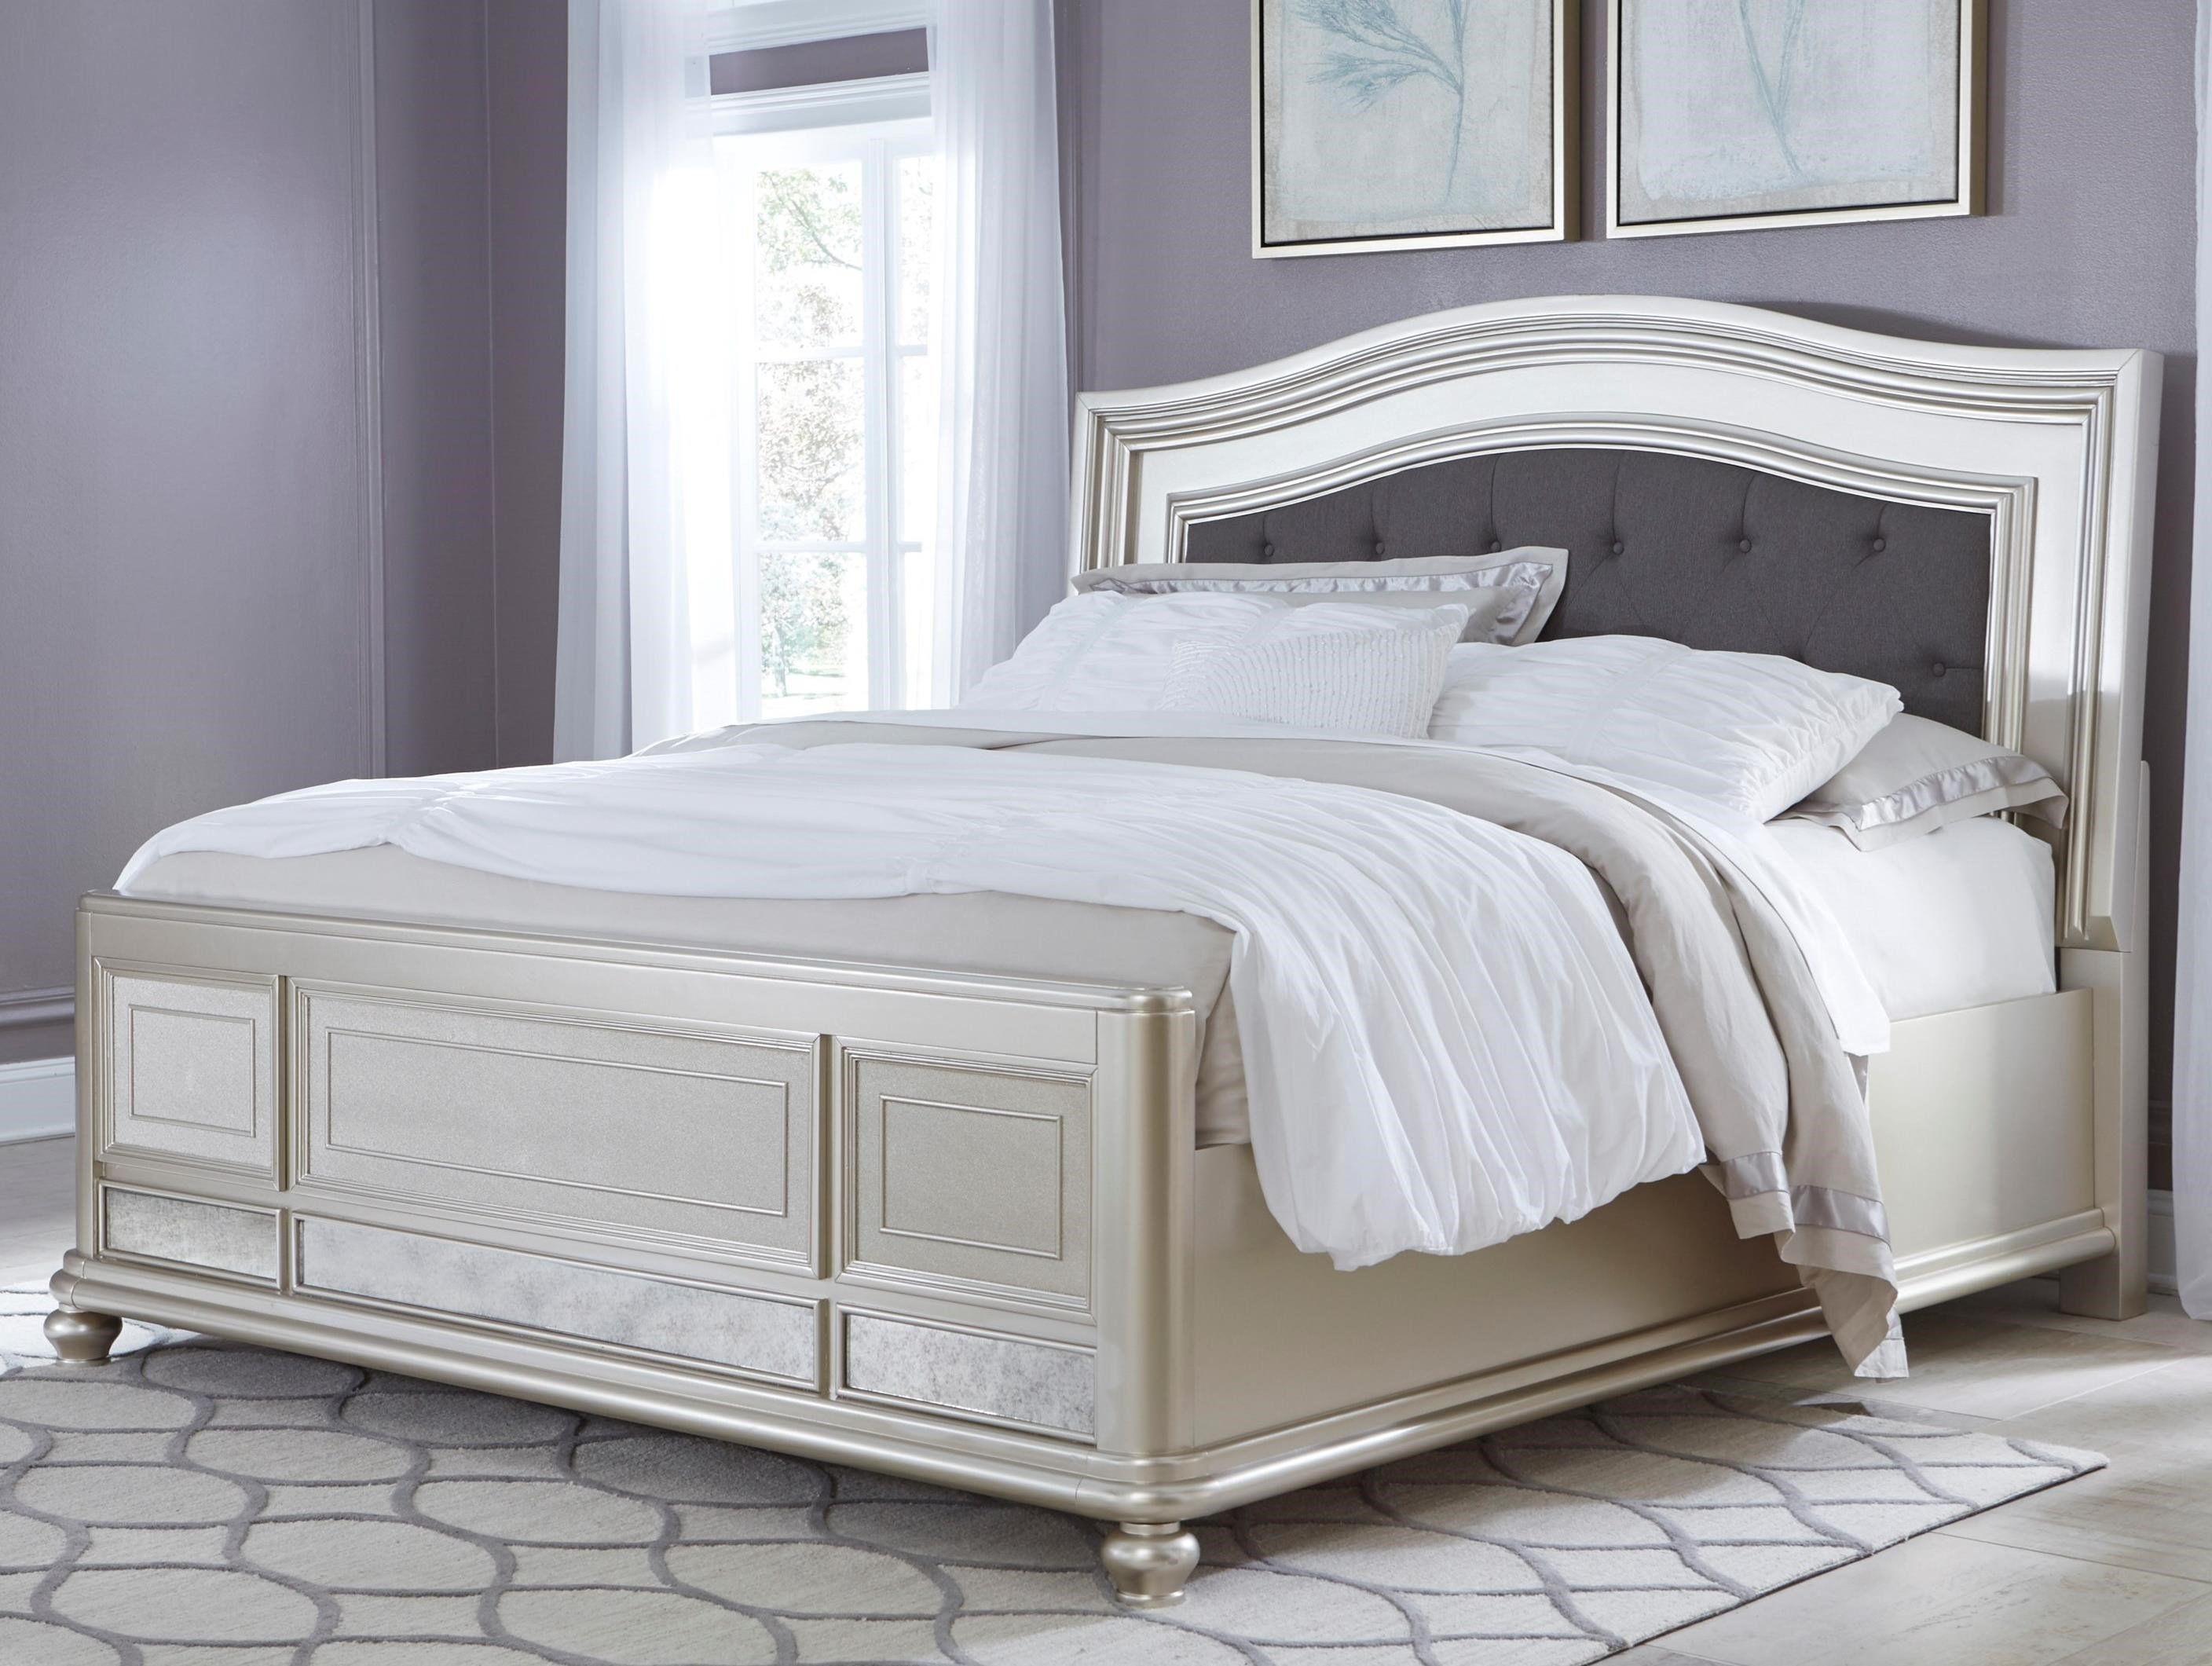 Signature Design By Ashley Coralayne King Panel Bed With Upholstered Headboard Northeast